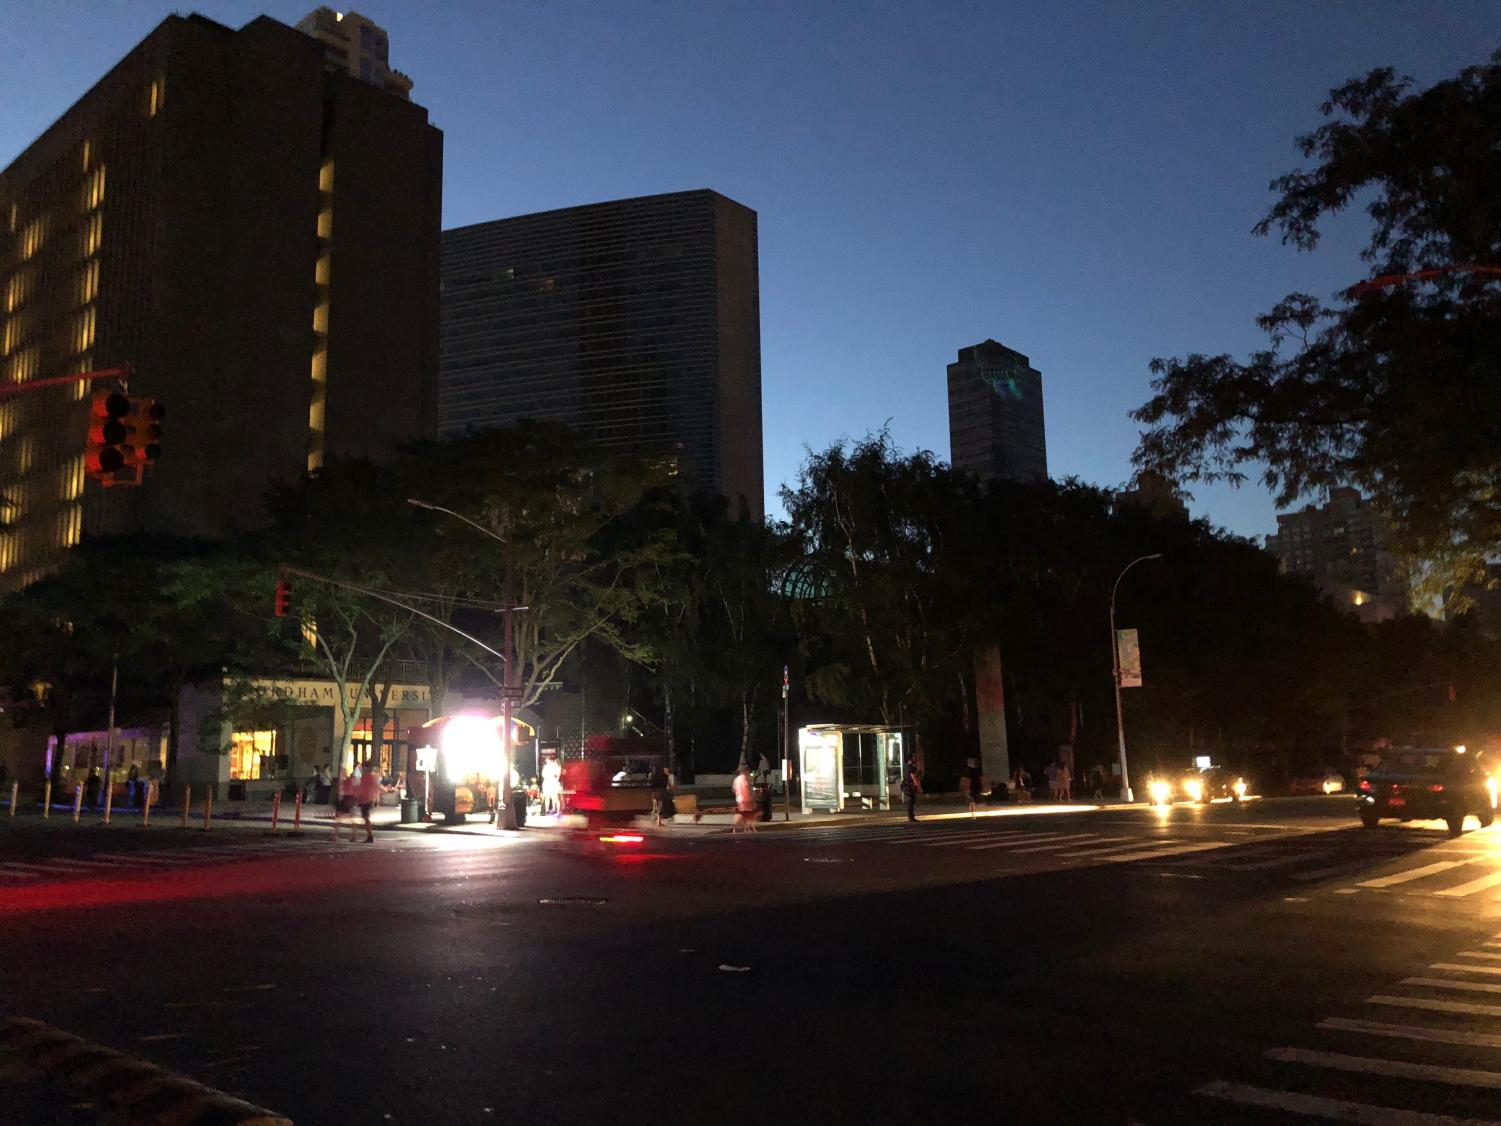 Fordham College at Lincoln Center was among the neighborhoods affected by the Con Edison power outage on Saturday.